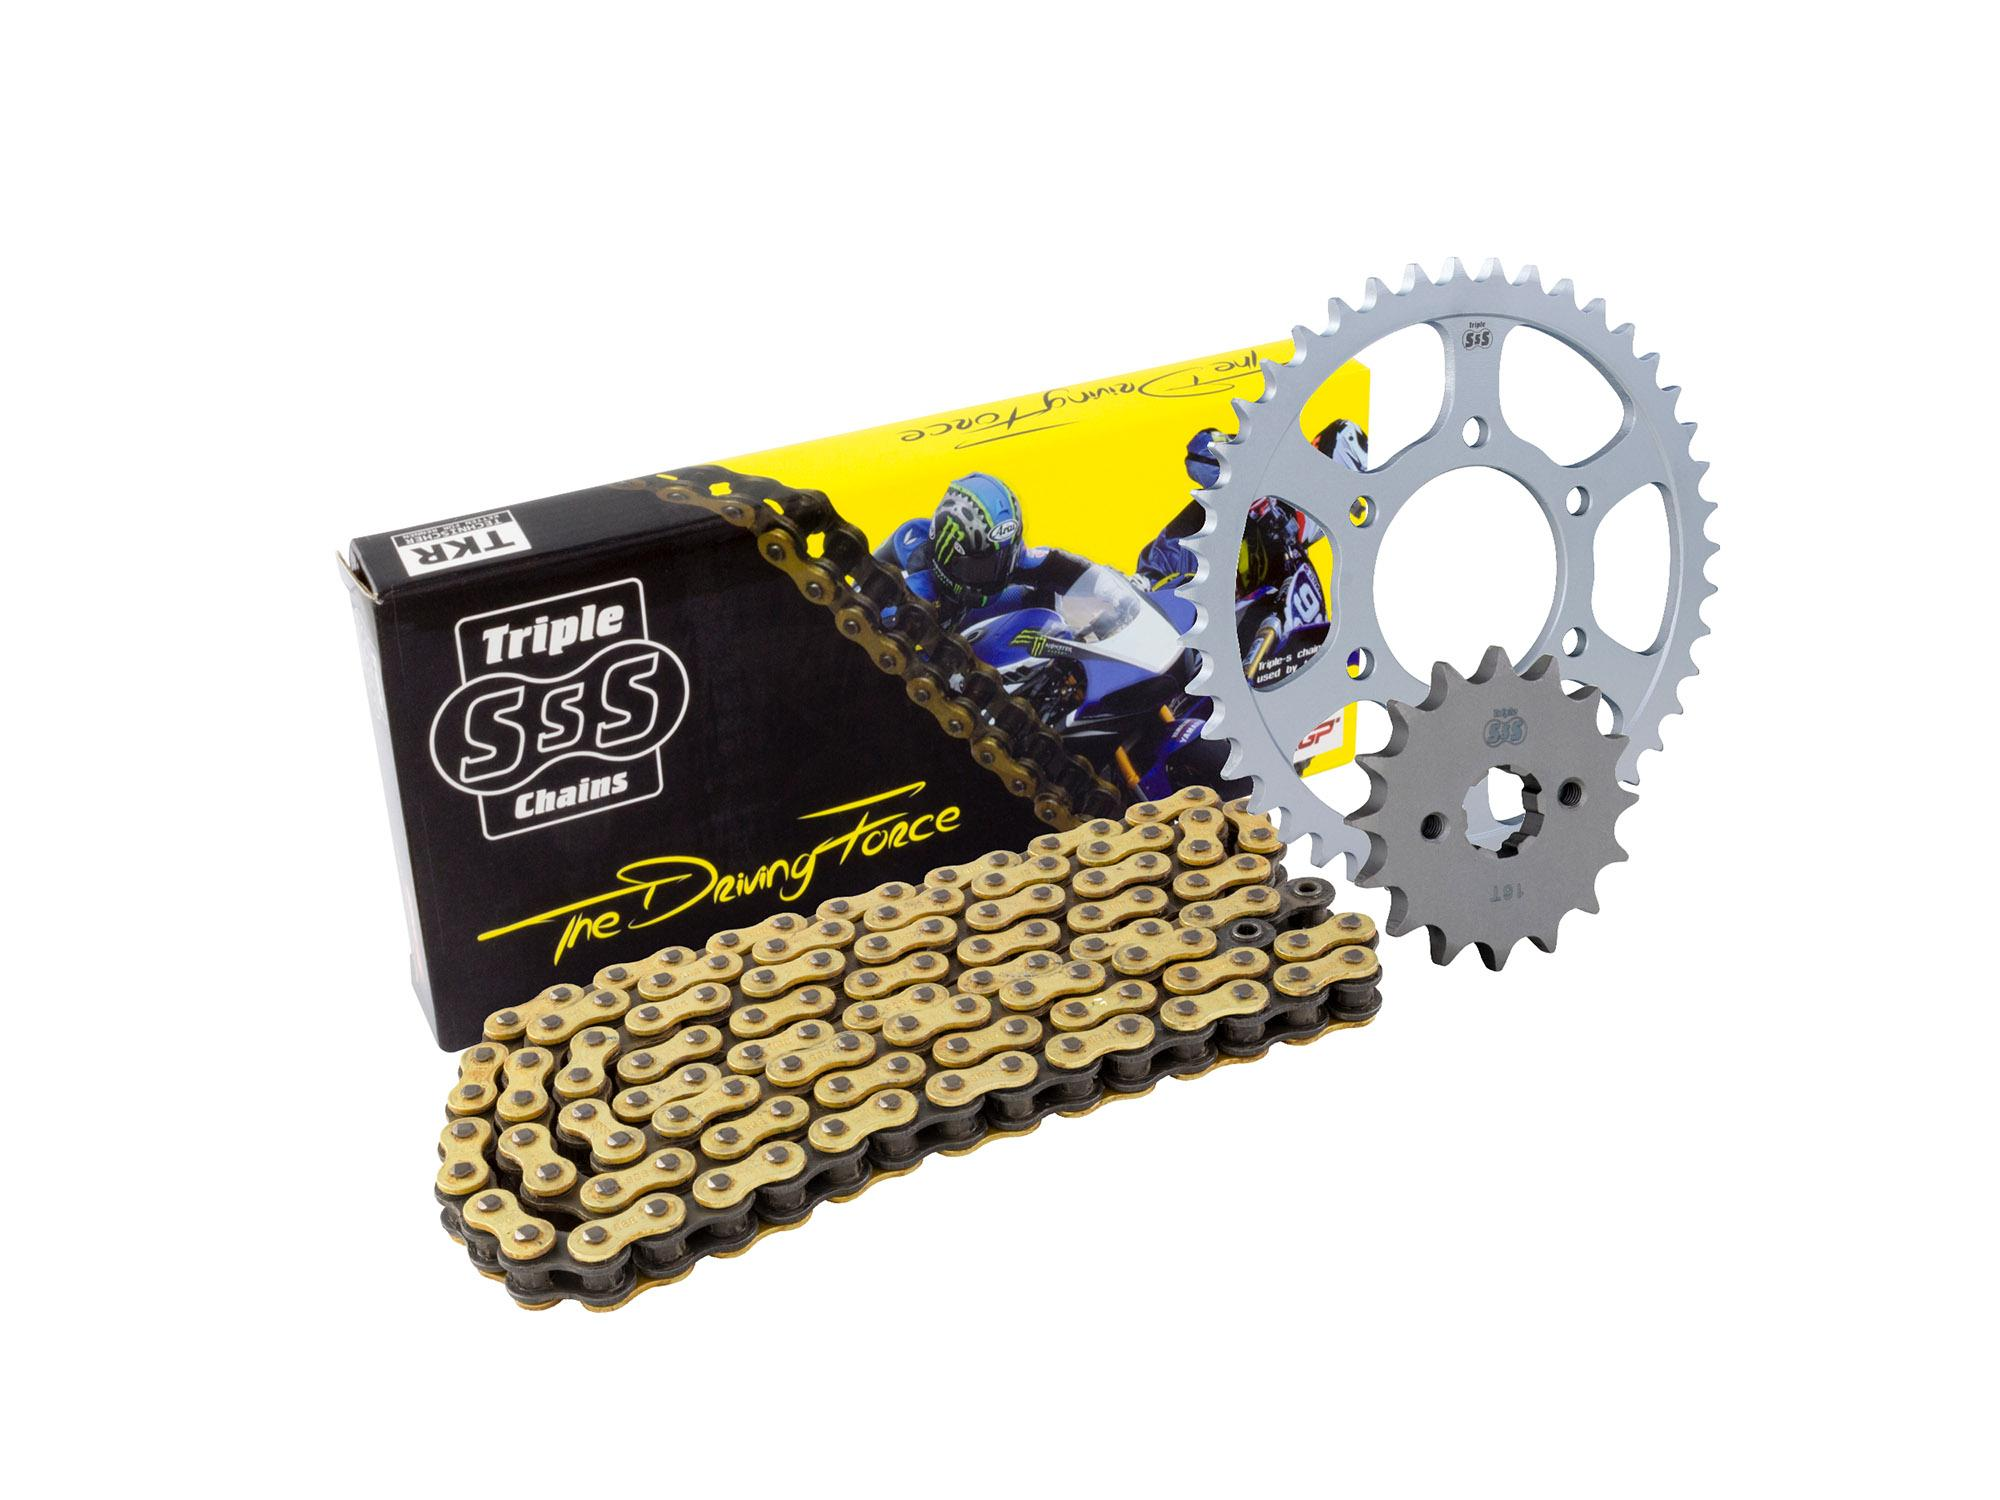 Kawasaki ZX-12R A/B 00-05 Chain & Sprocket Kit: 18T Front, 46T Rear, HD O-Ring Gold Chain 530H 116 Link